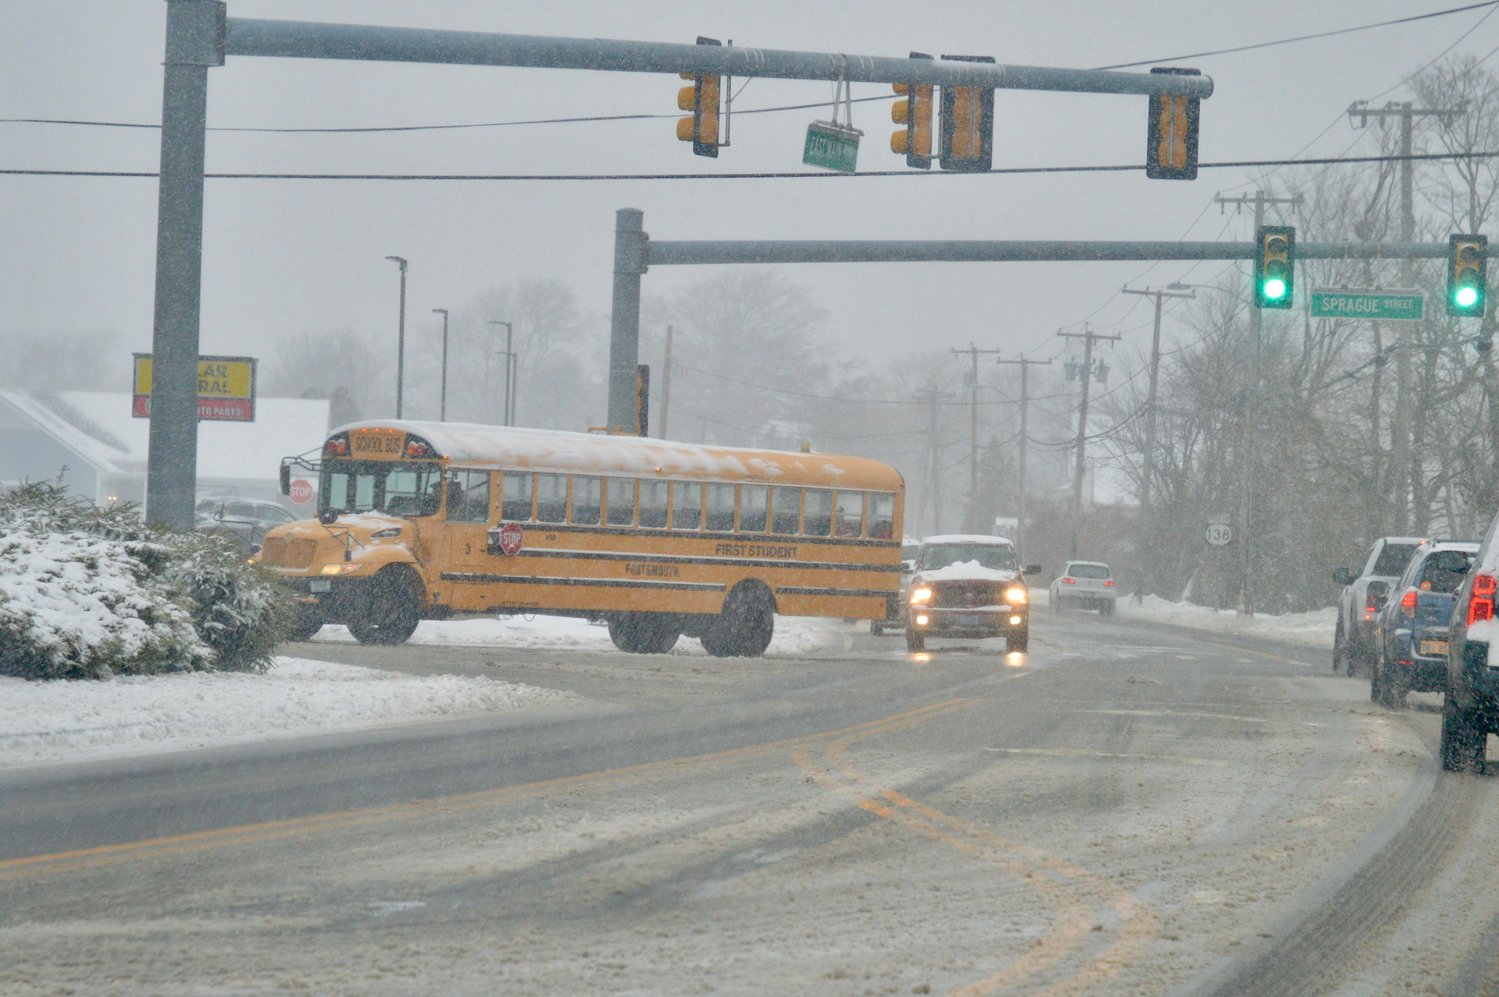 A school bus heads up Sprague Street from East Main Road around 8:35 a.m. Tuesday.